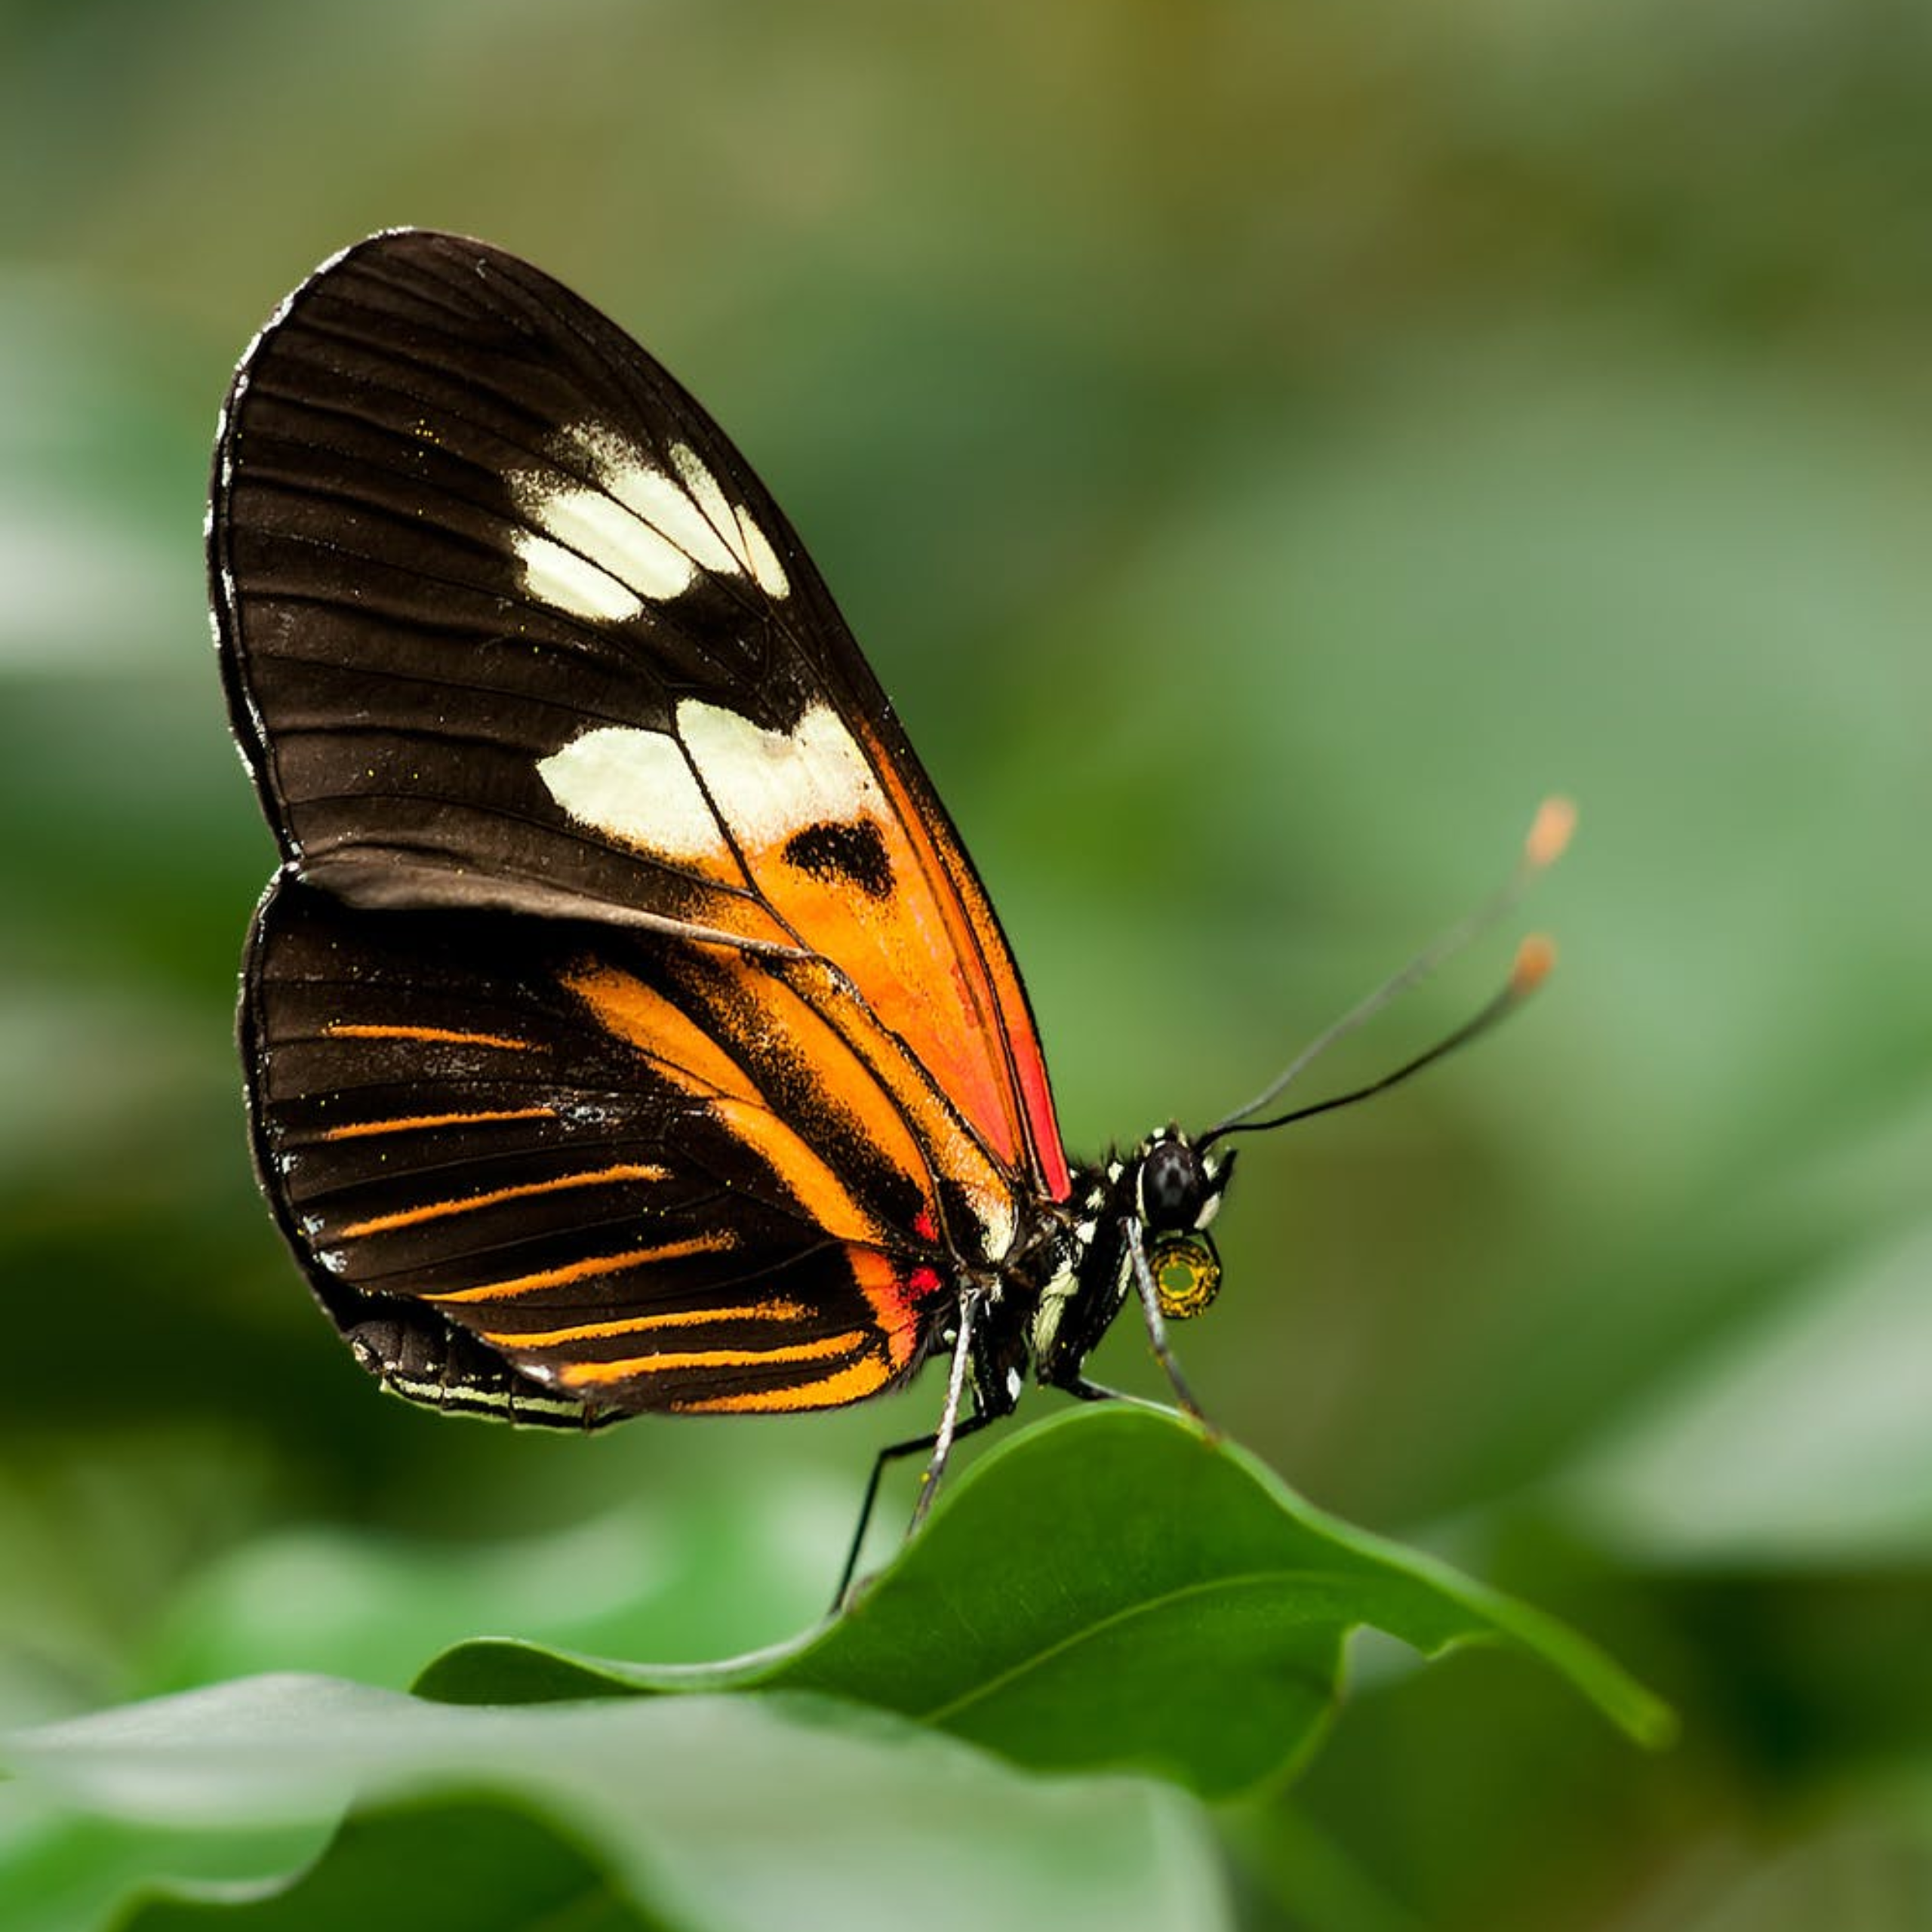 Large butterfly sitting on a leaf, very close up.